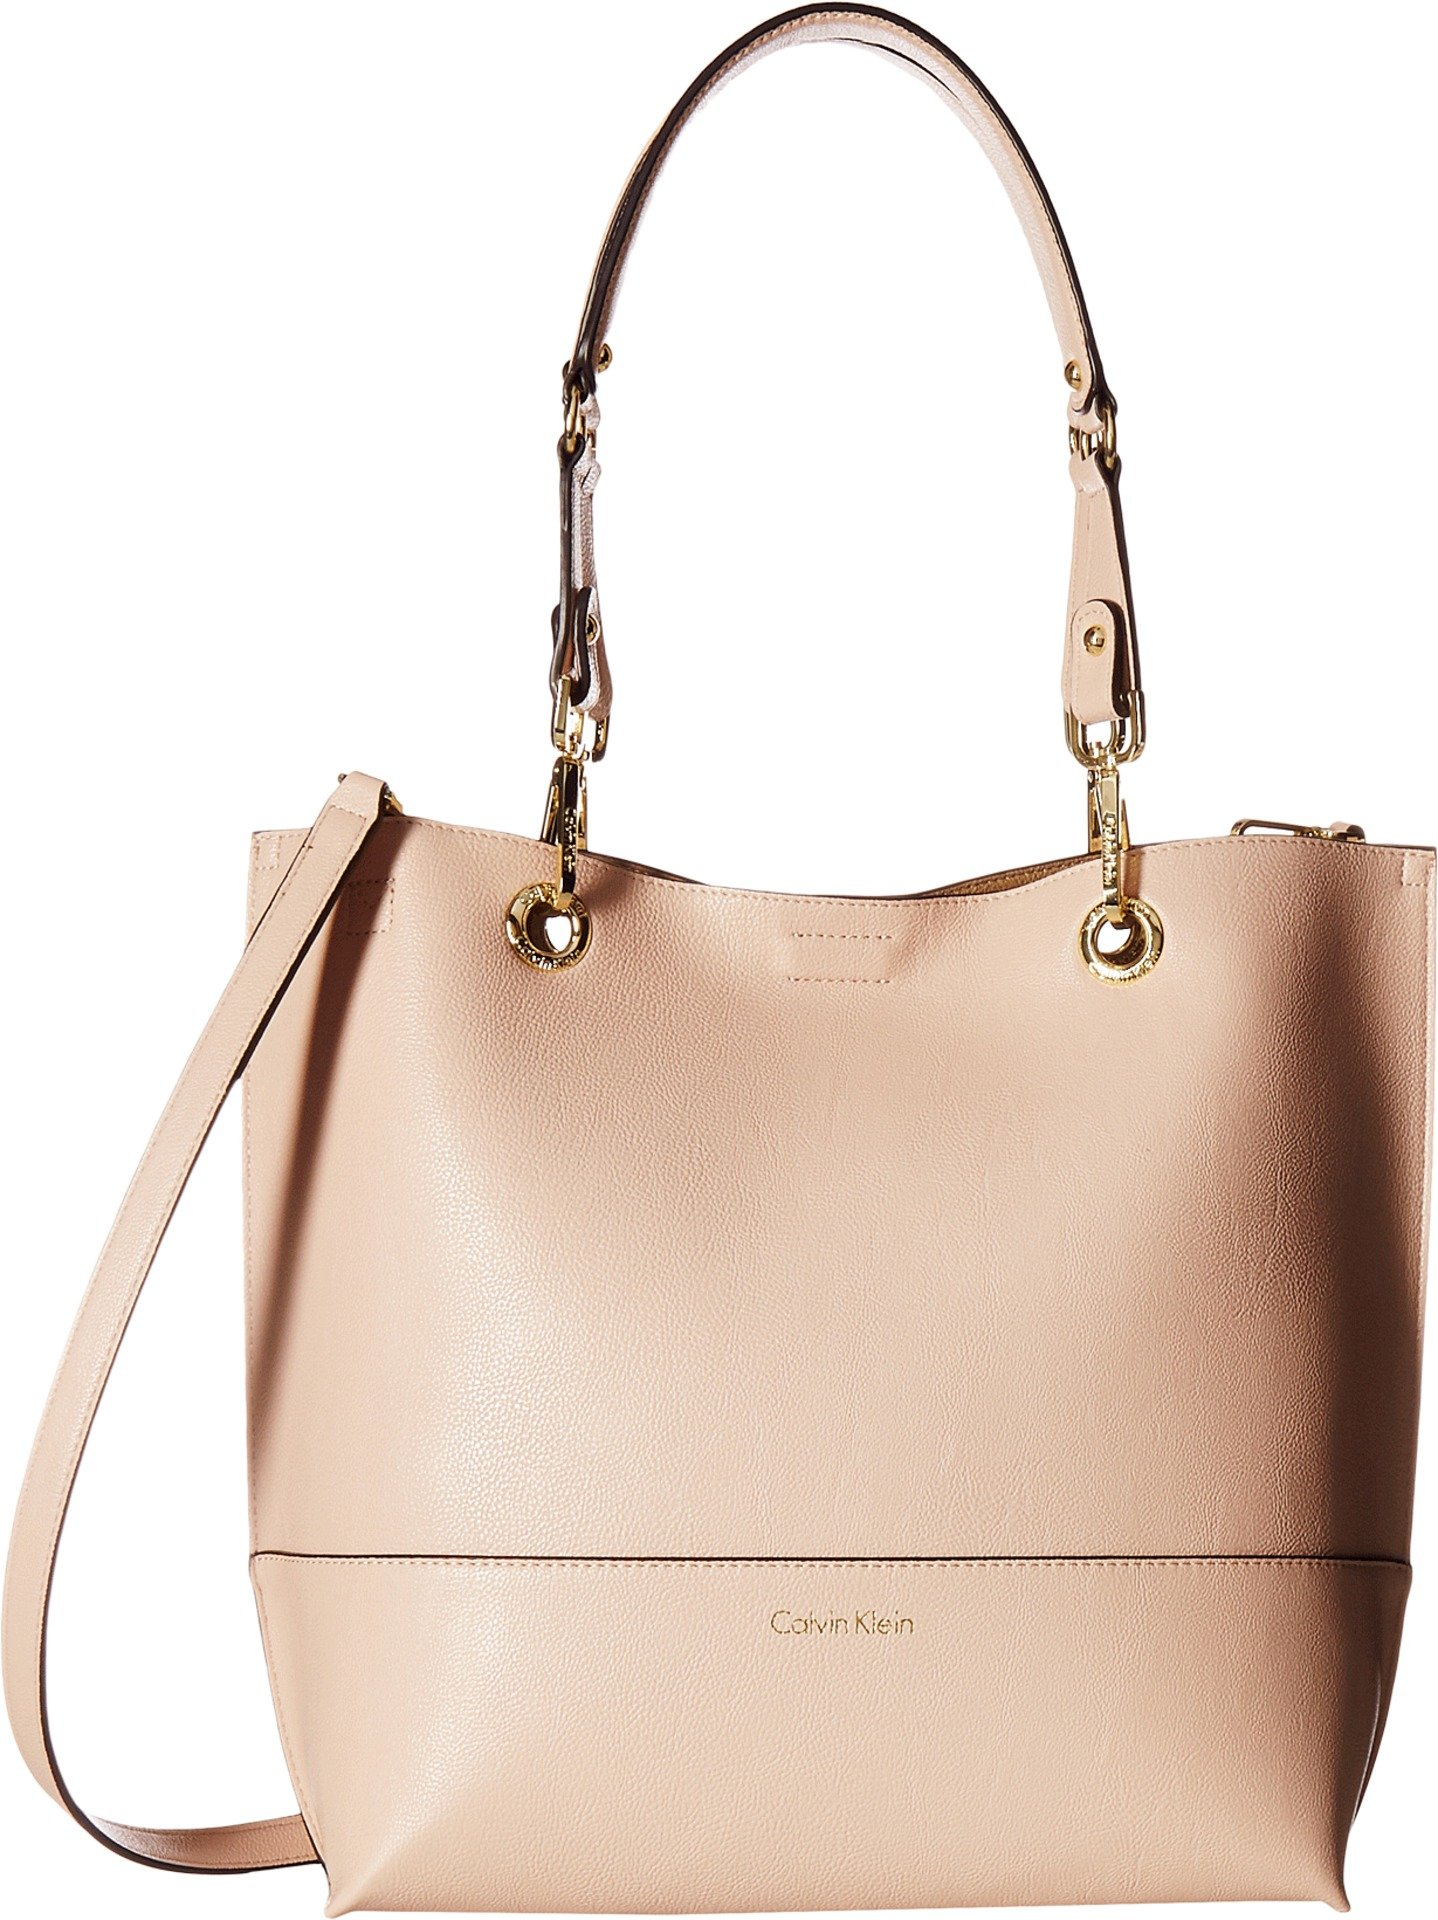 Calvin Klein Women's Unlined Tote Dessert Taupe One Size